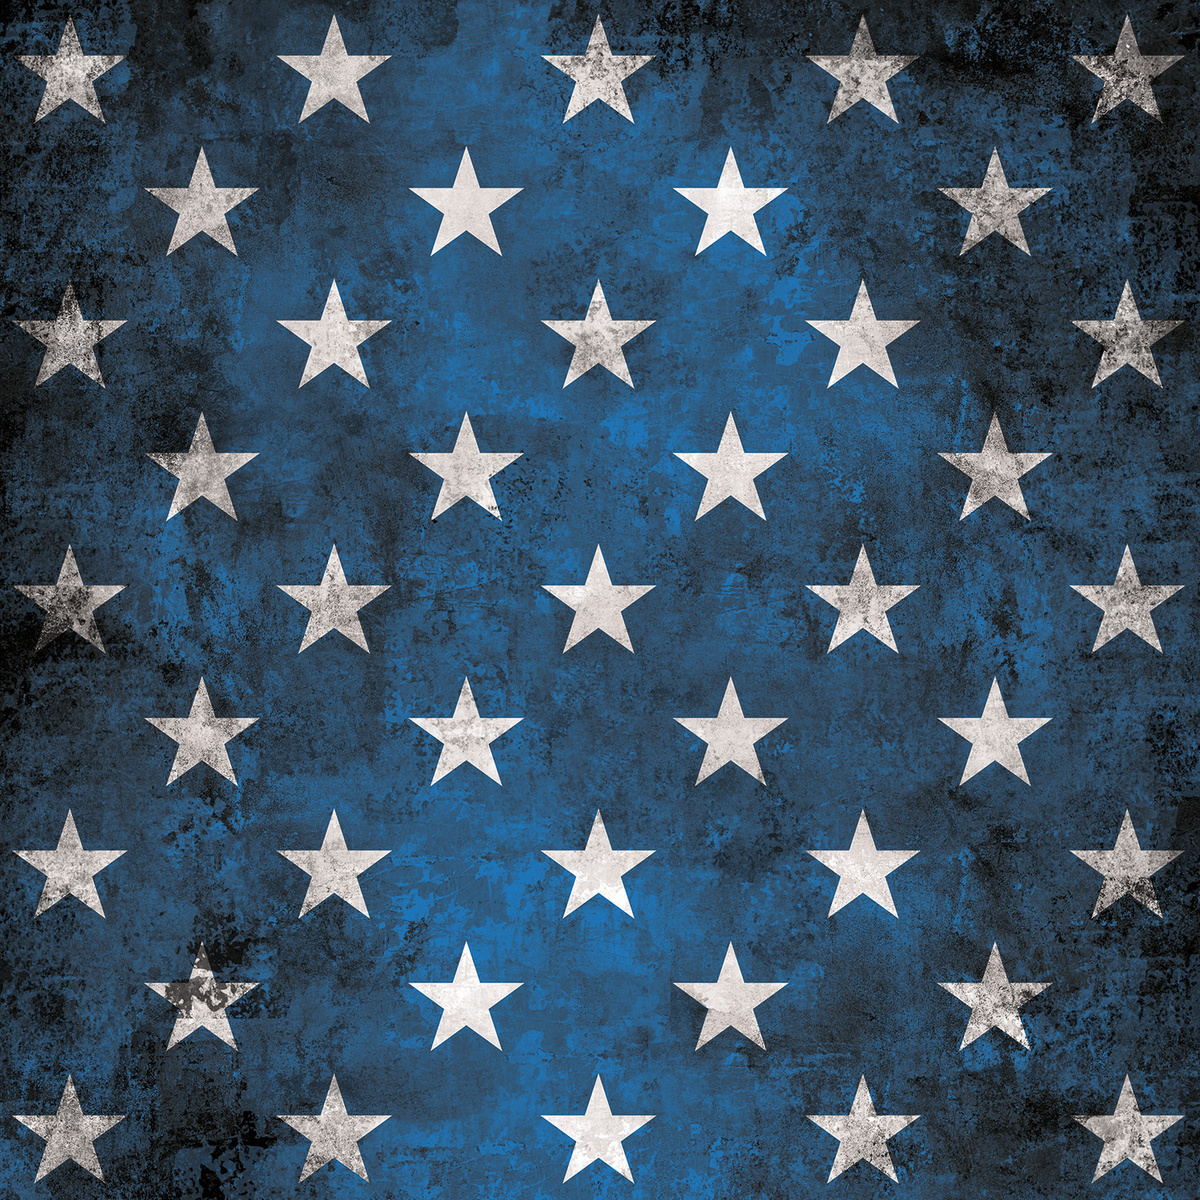 Apollo Brown & Ras Kass –